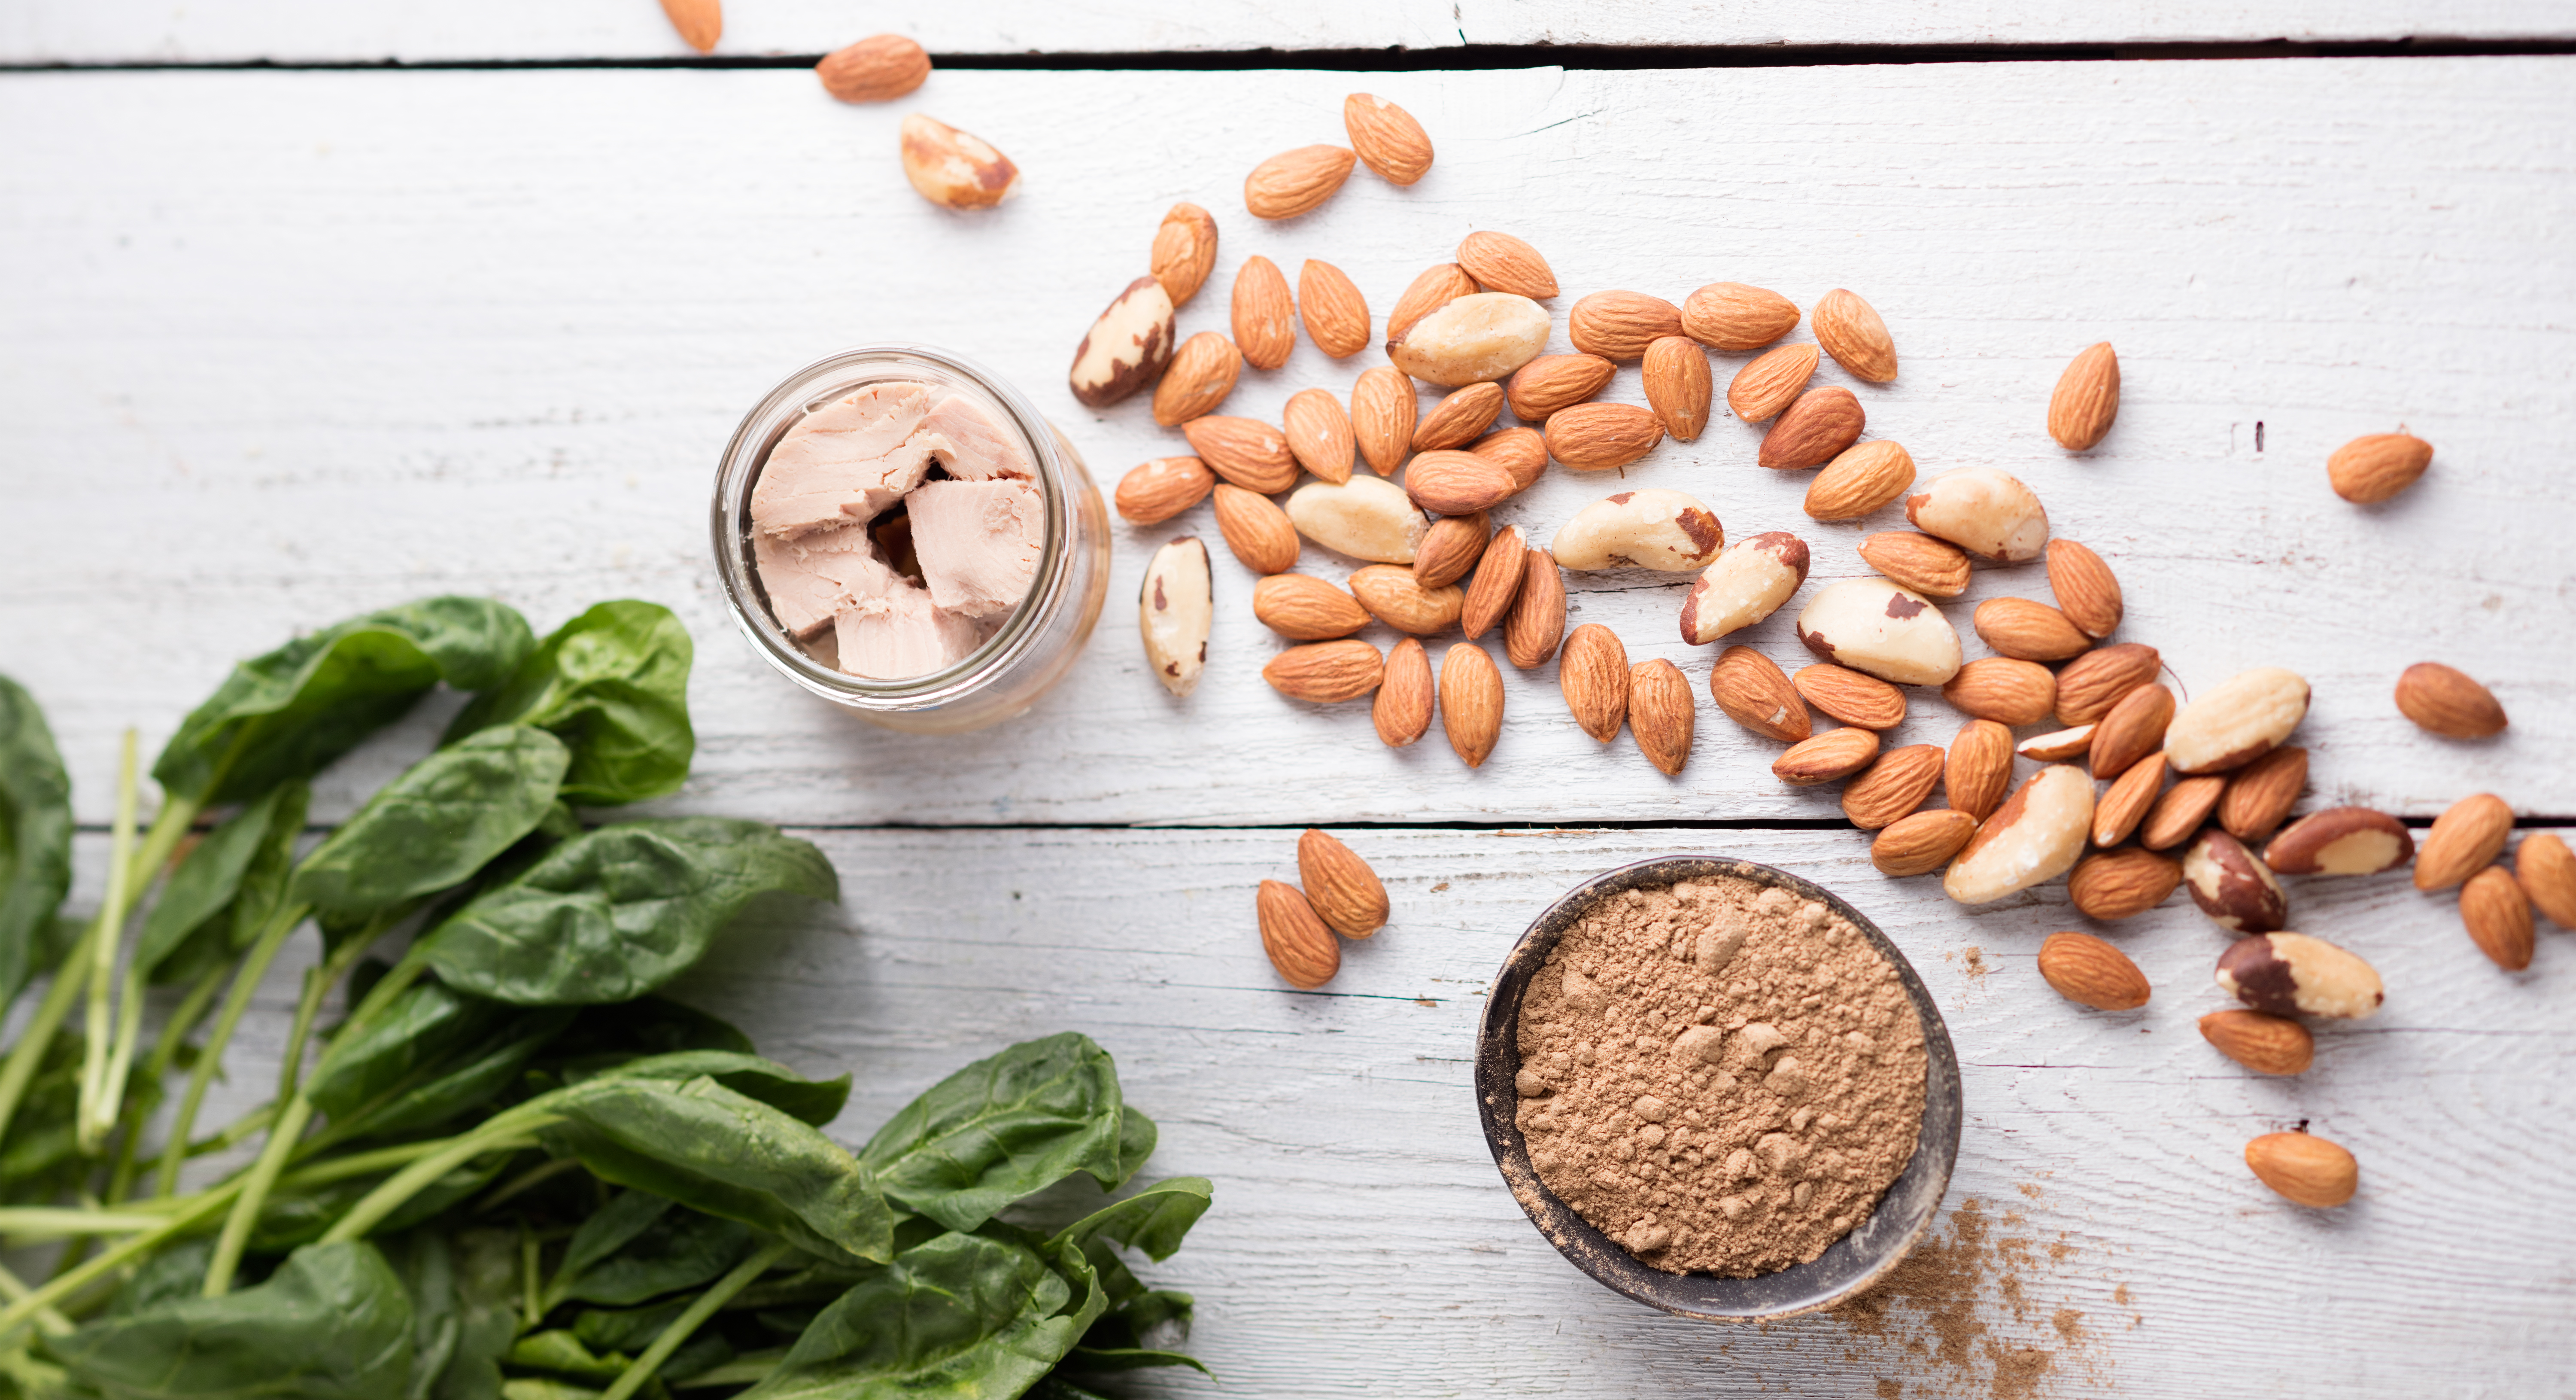 5 Healthy Foods You Shouldn't Overdose On